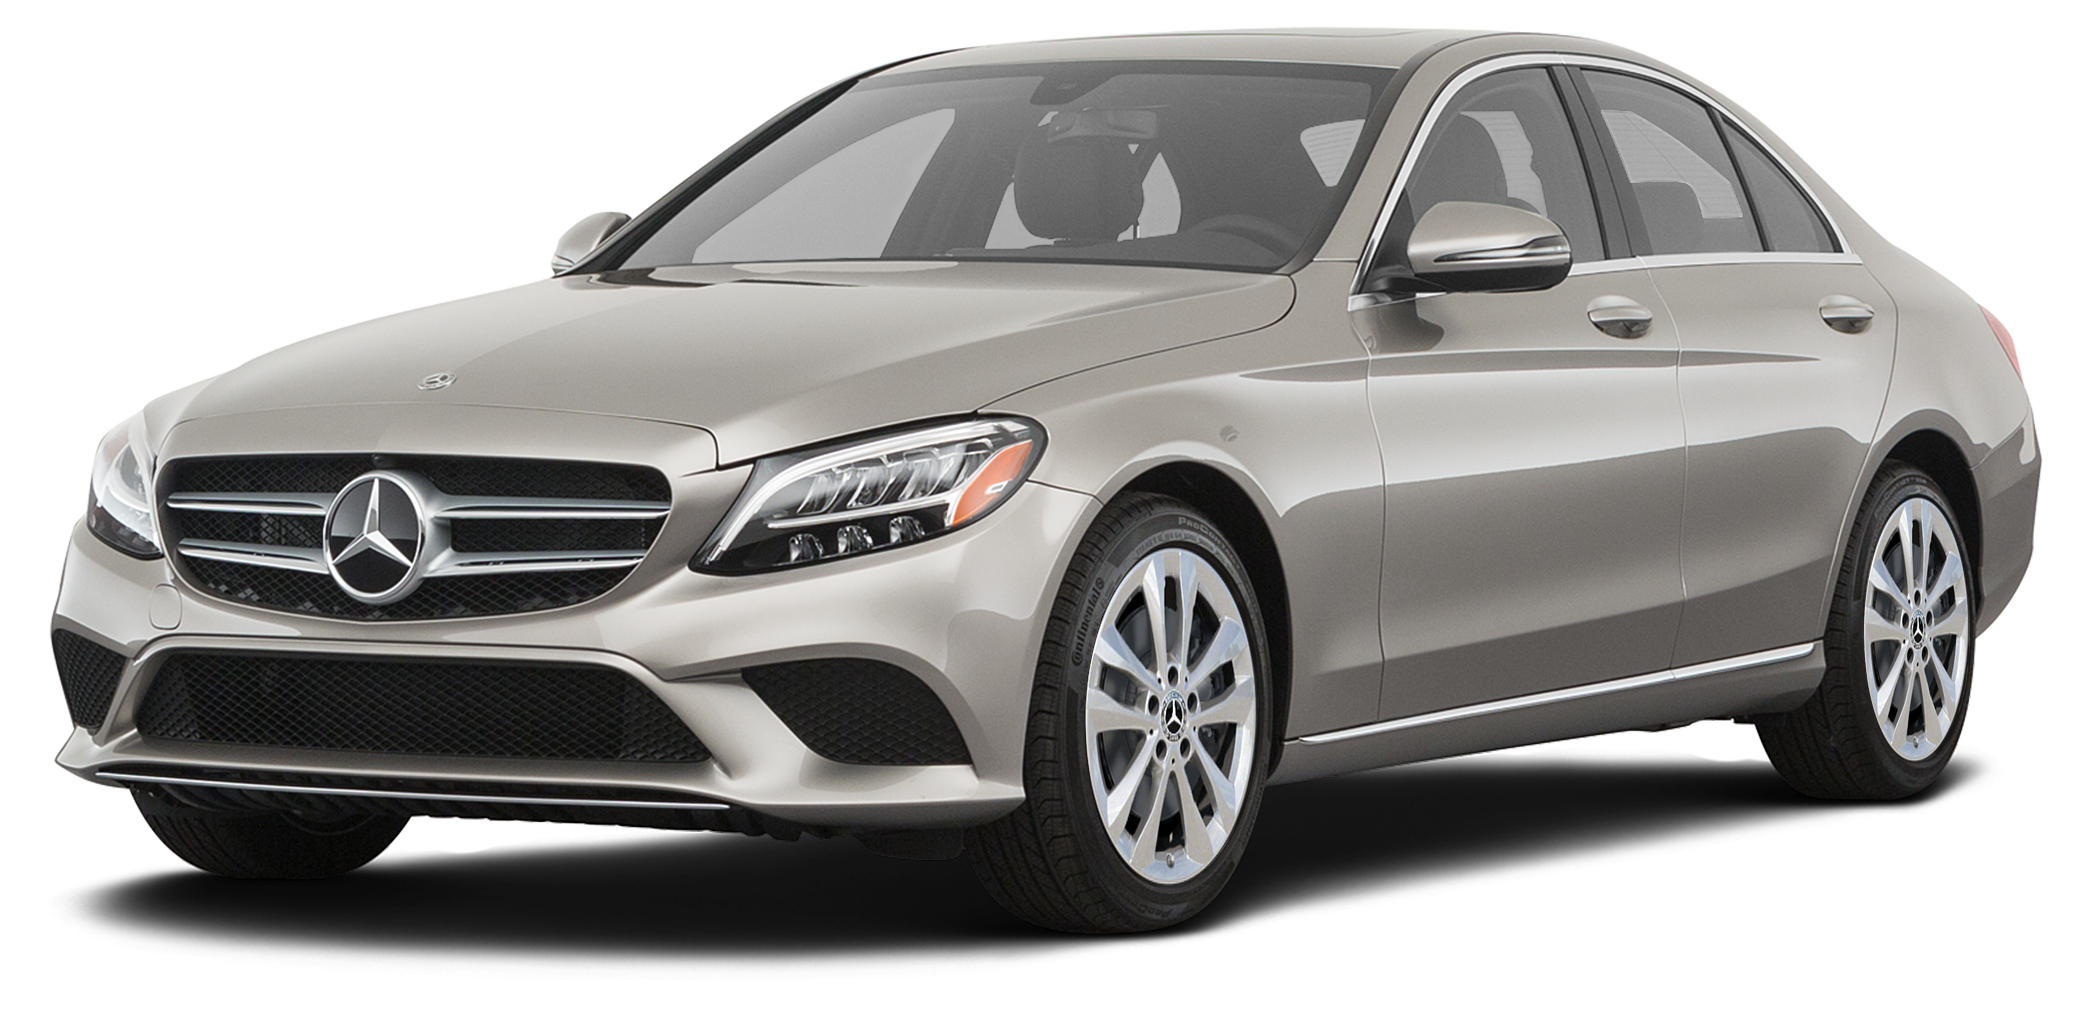 2019 mercedes benz c class incentives specials offers in brooklyn ny. Black Bedroom Furniture Sets. Home Design Ideas